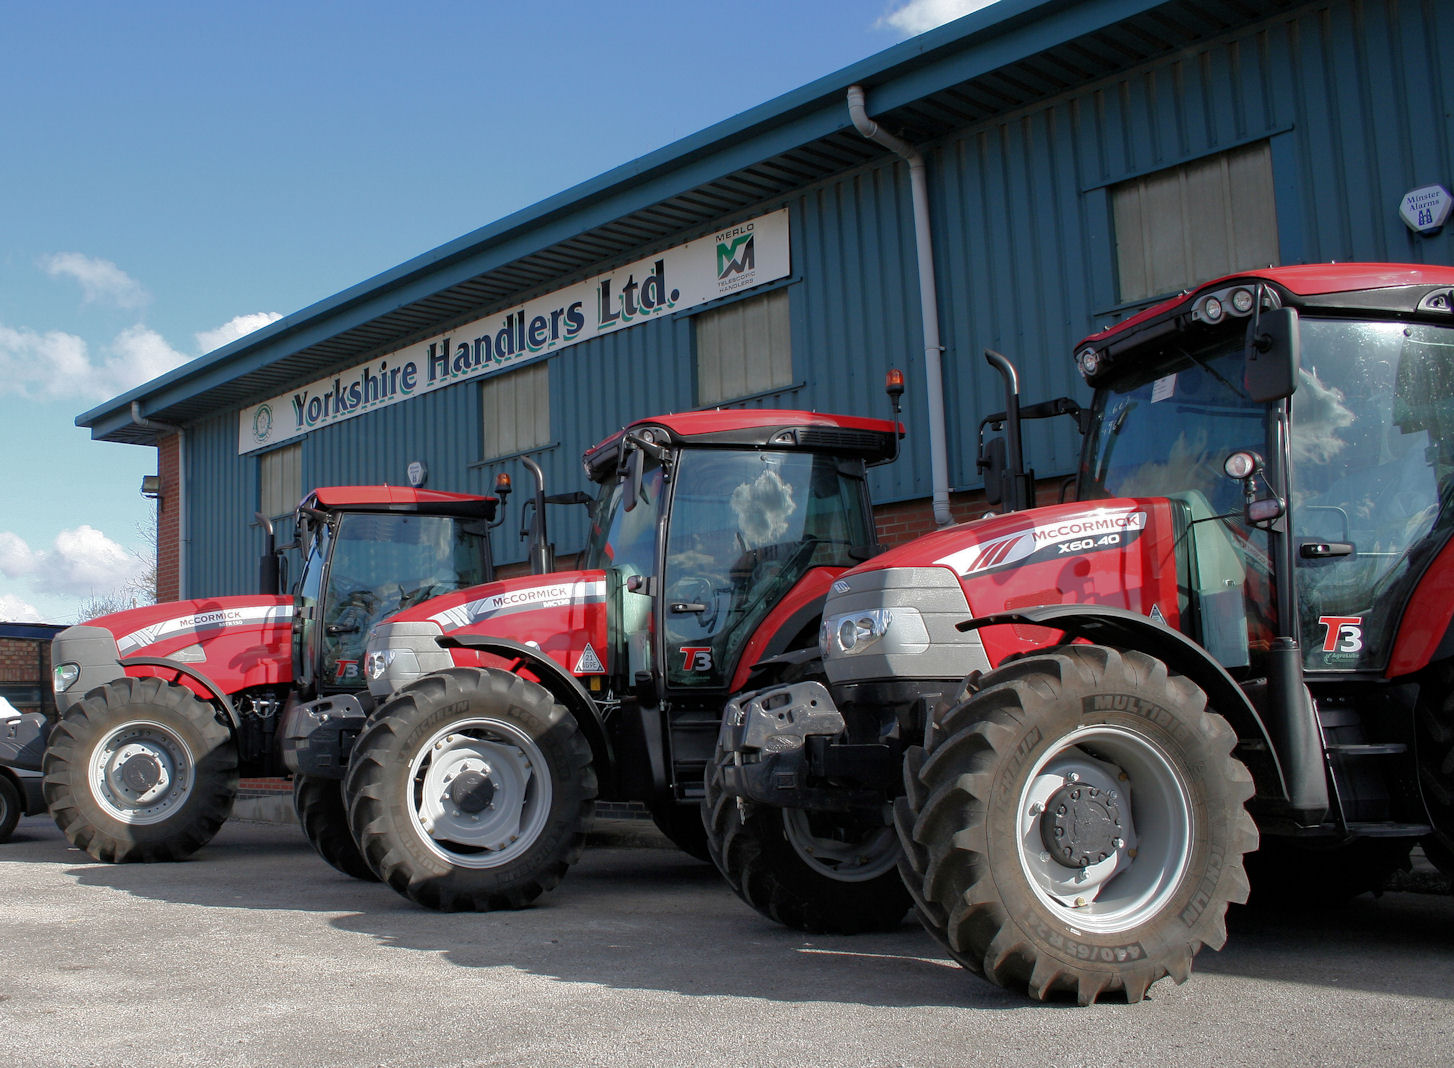 A line-up of new McCormick tractors at the Murton premises of new sales and service support dealer Yorkshire Handlers.